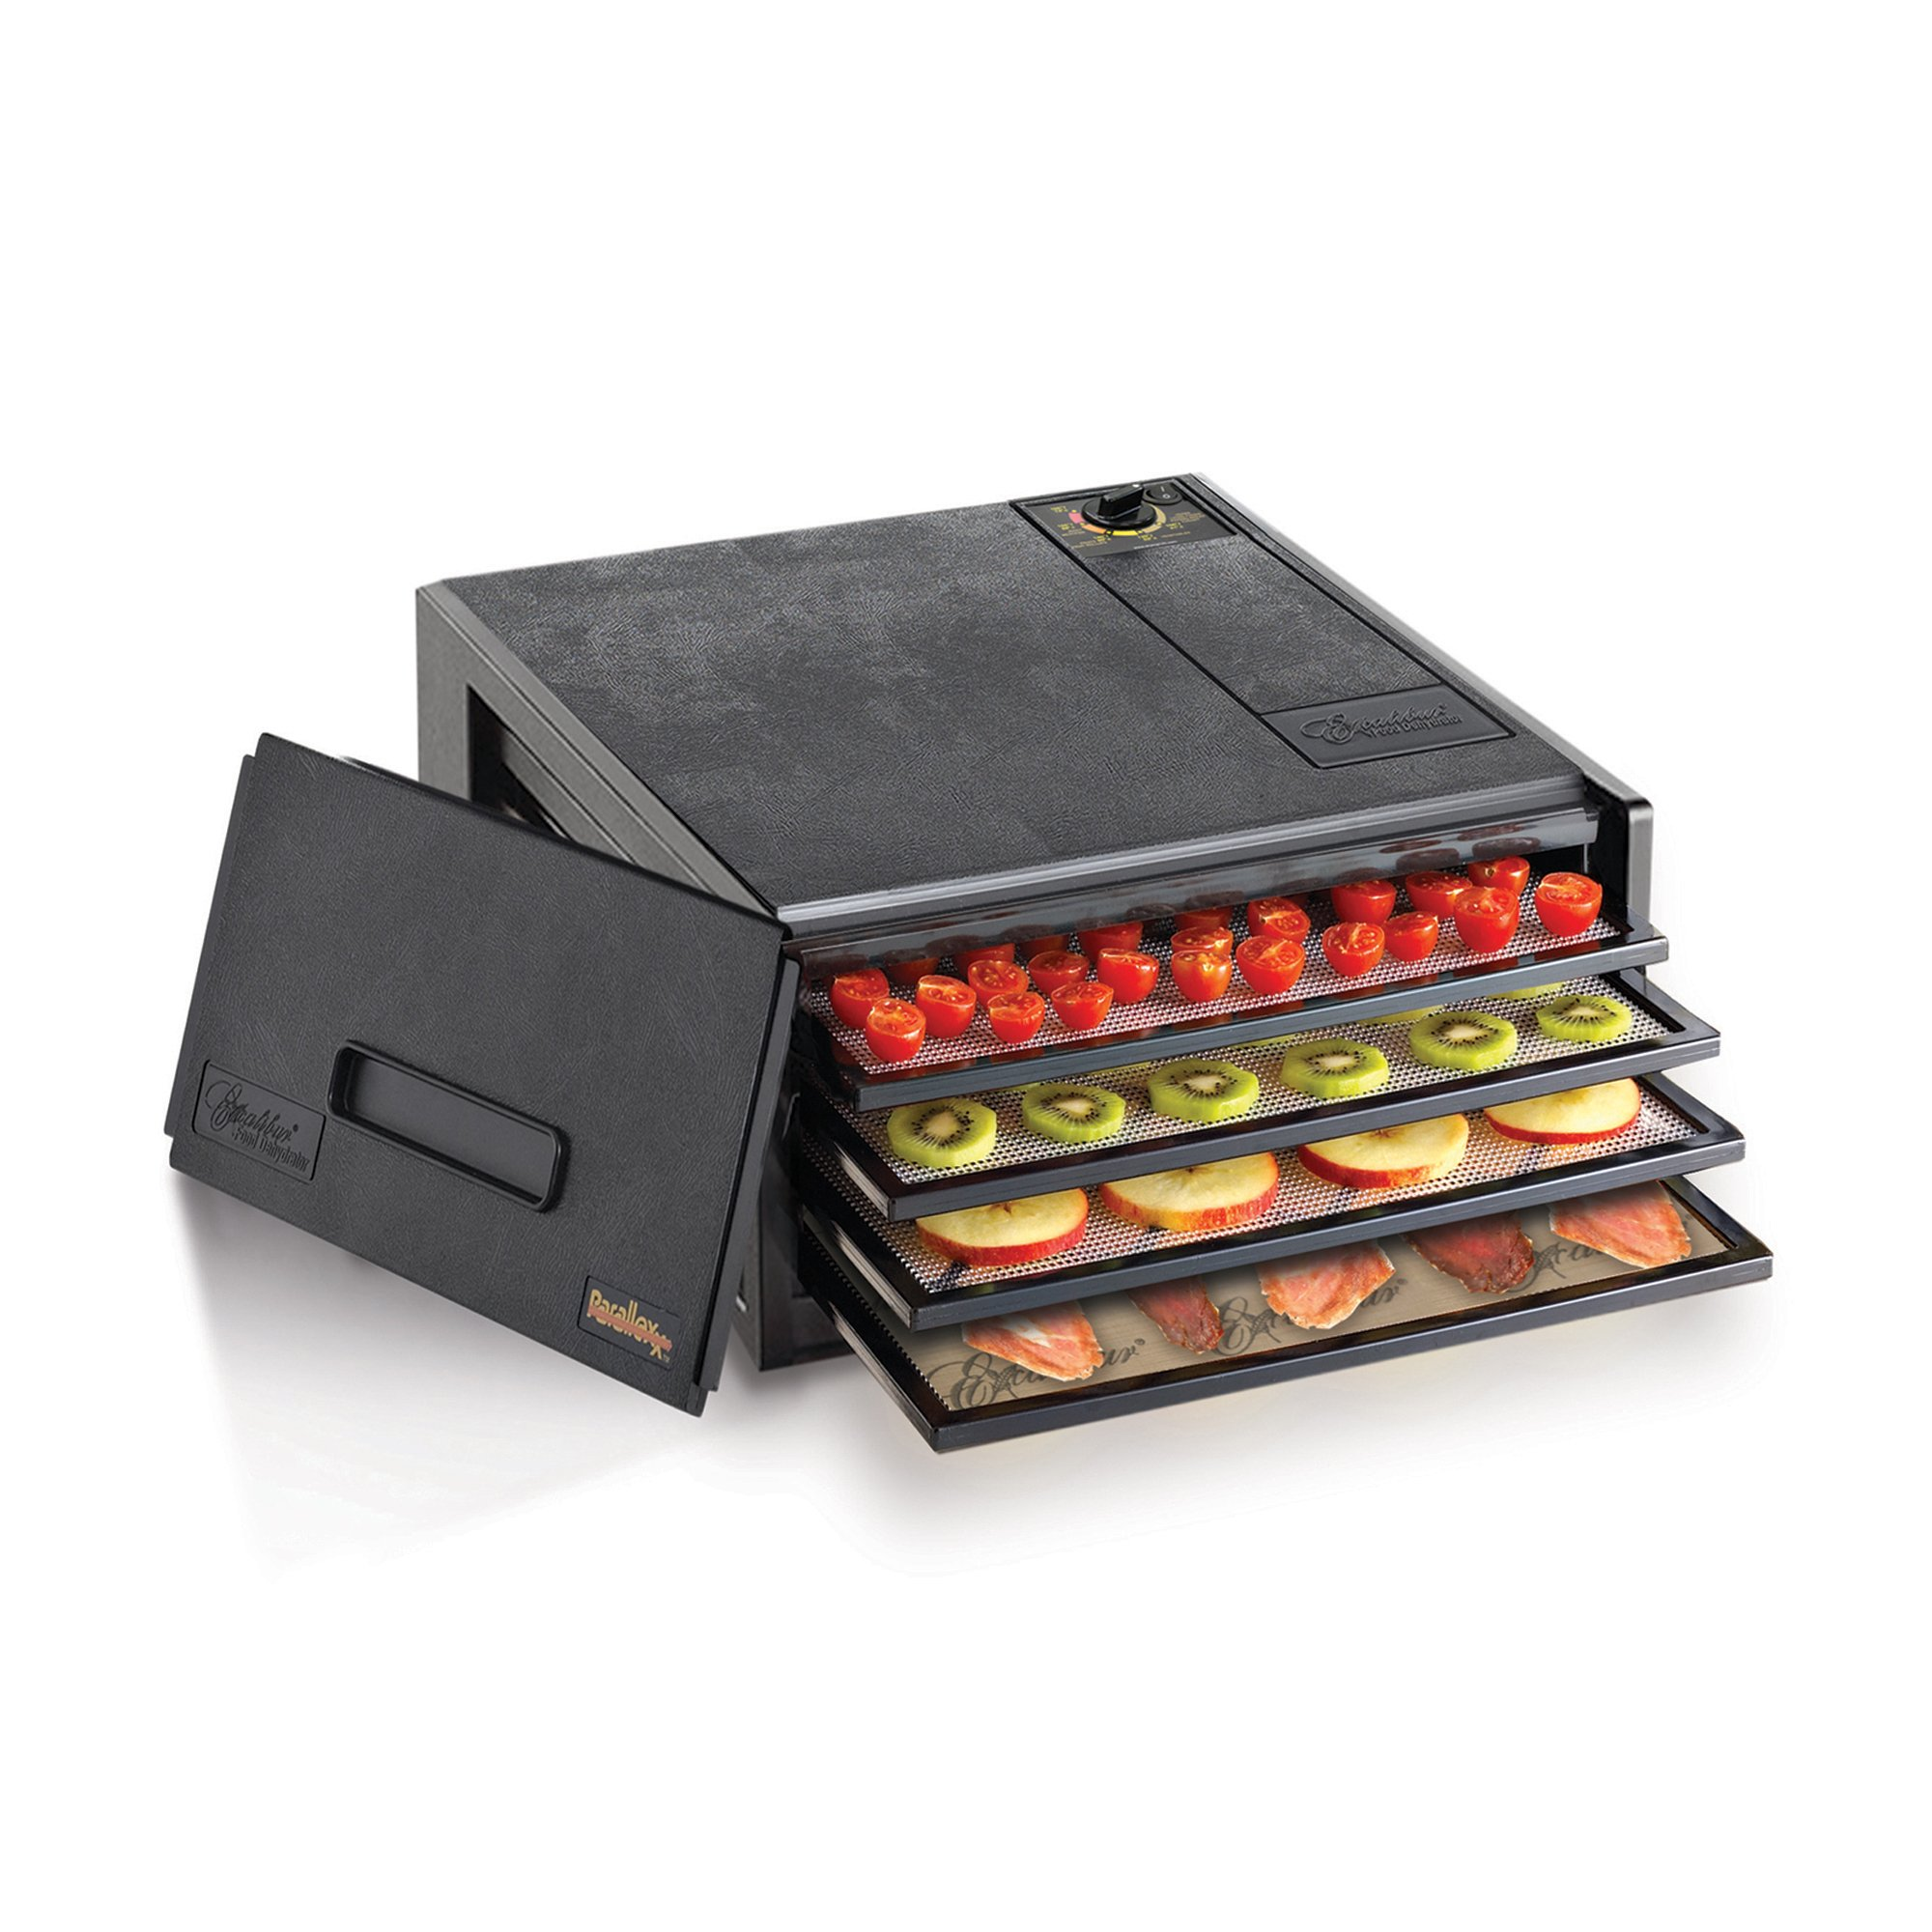 Excalibur 2400 4-Tray Electric Food Dehydrator with Adjustable Thermostat Accurate Temperature Control Faster and Efficient Drying Includes Guide to Dehydration Made in USA, 4-Tray, Black